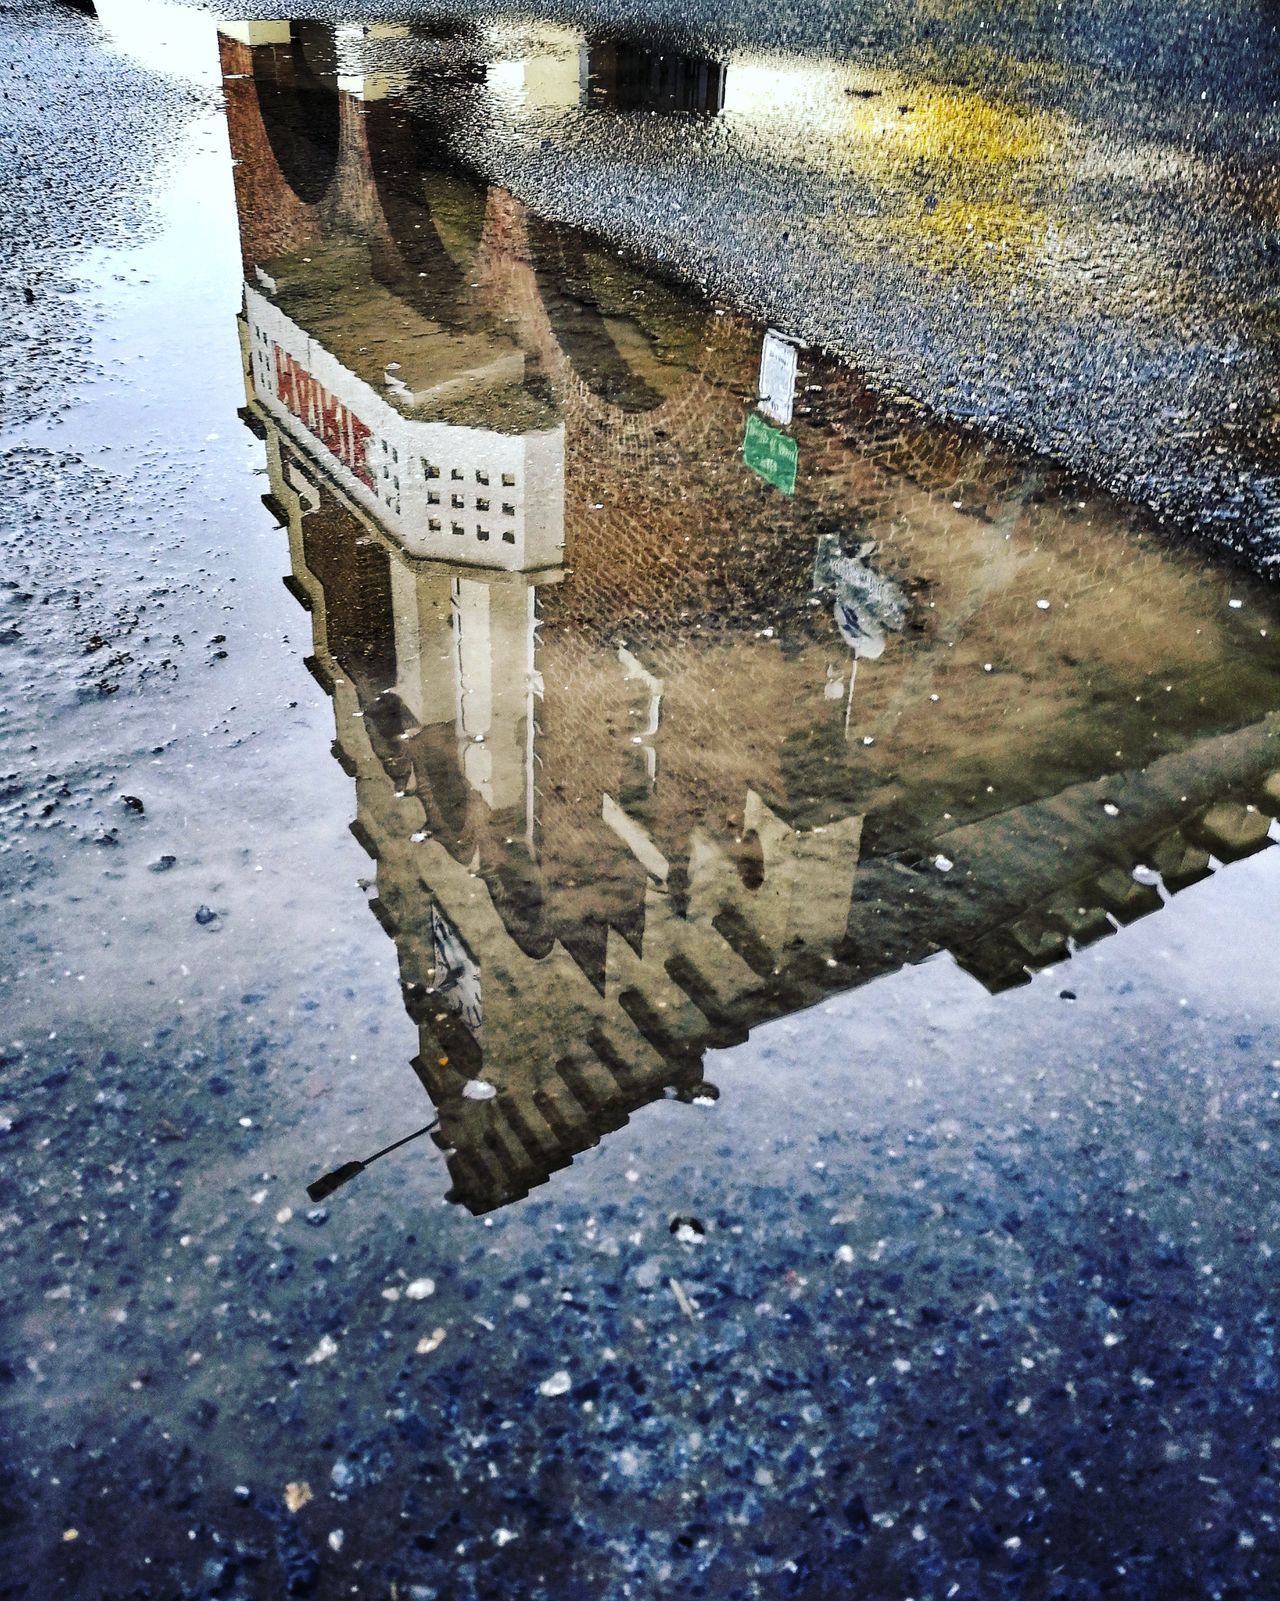 La mairie de Vendhuile. Terre Picarde, du nord. Pays du Vermandois. Rural Scene Street Photography Puddle Puddleography Reflection City Architecture RainyDay Rainy Days Tranquil Scene Outdoors